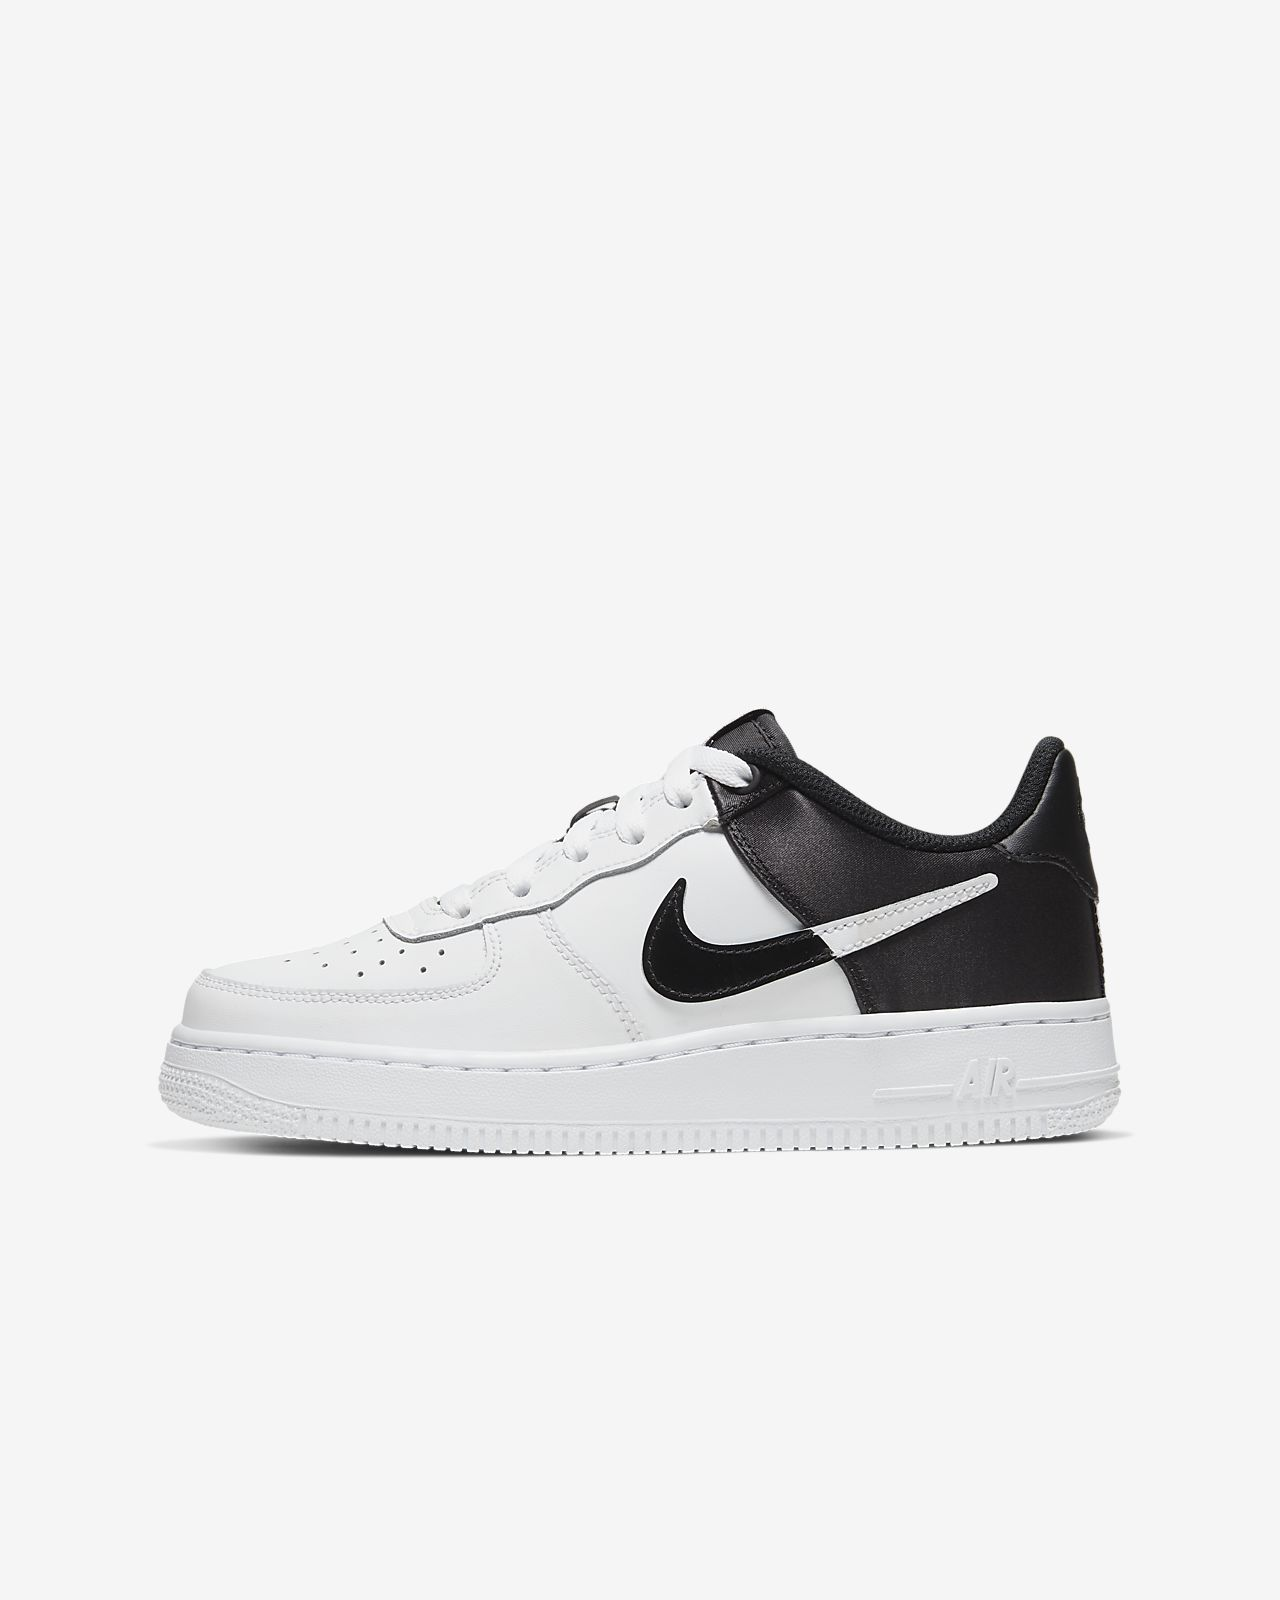 Nike Air Force 1 NBA Low Schuh für ältere Kinder